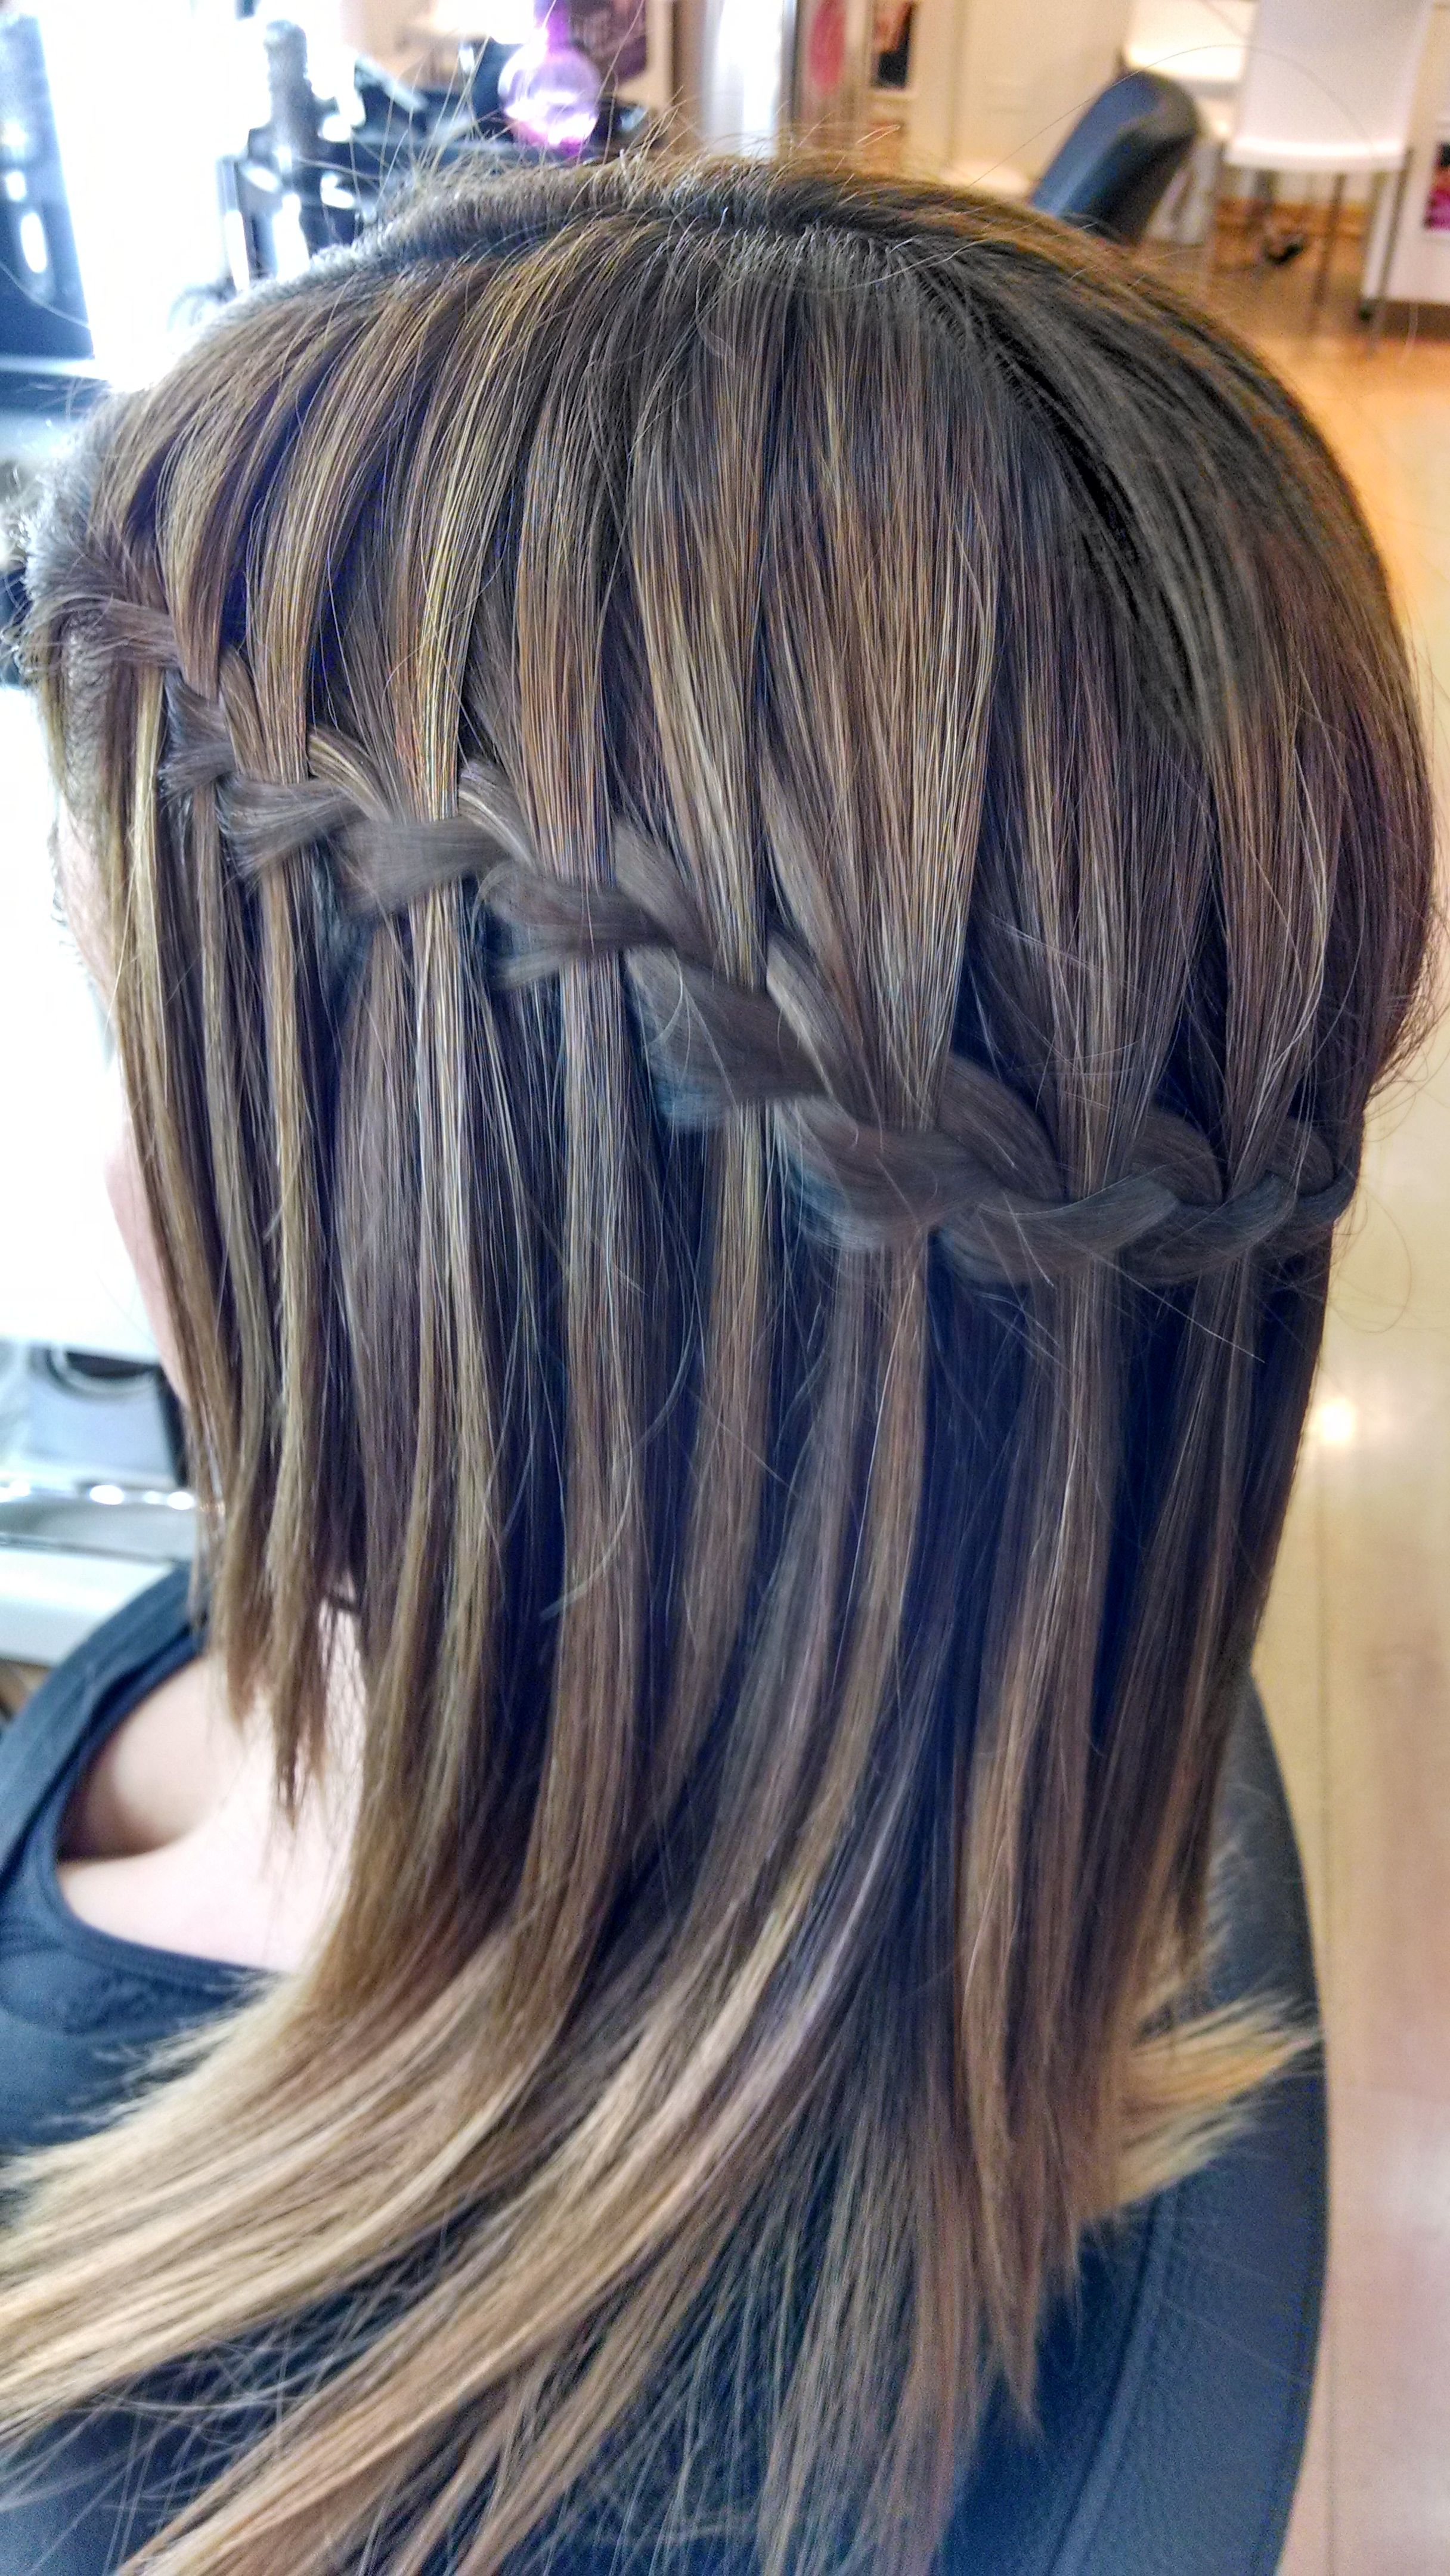 Pin by katherine morales ramírez on trenzas pinterest tutorials